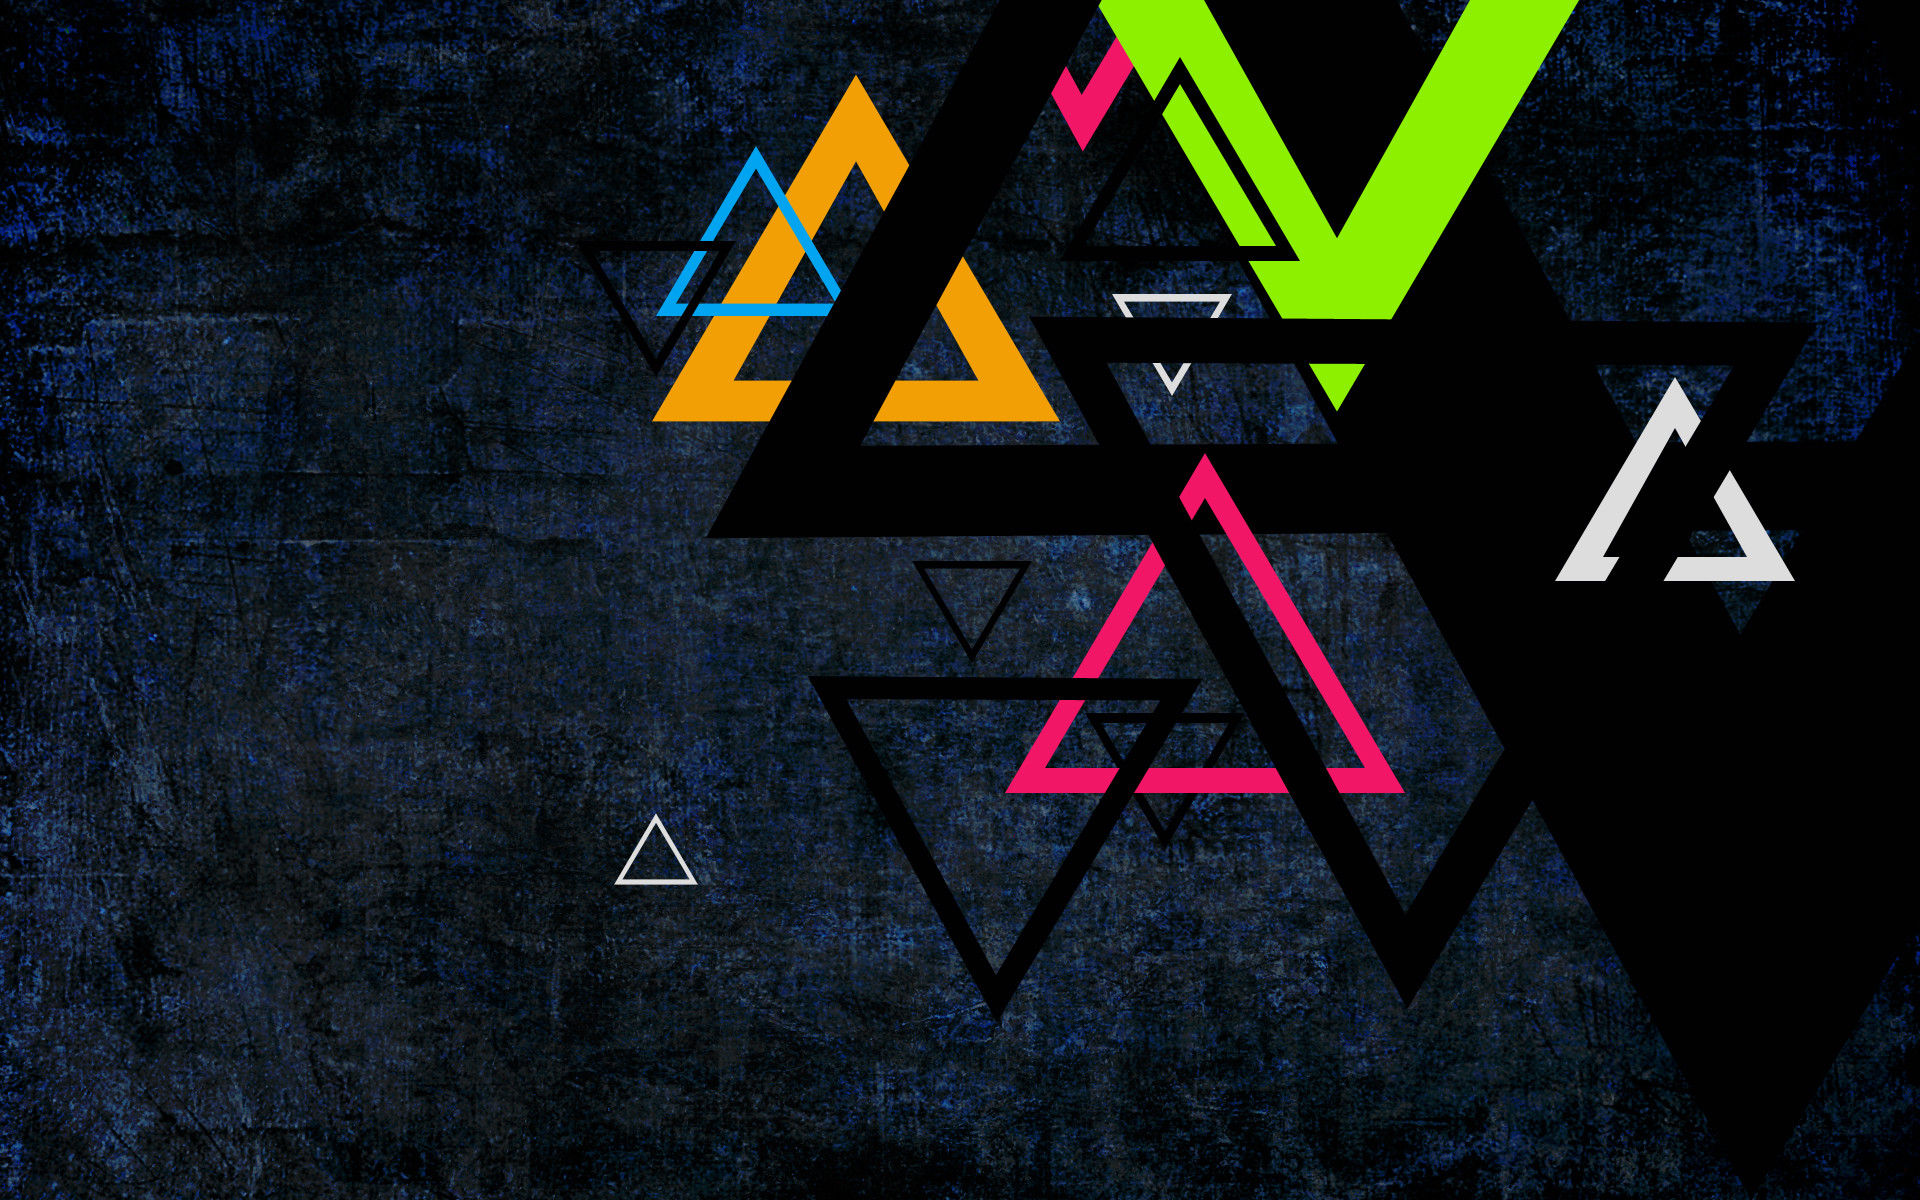 Hope you like this hd retro wallpapers with abstract shapes pack.Enjoy .